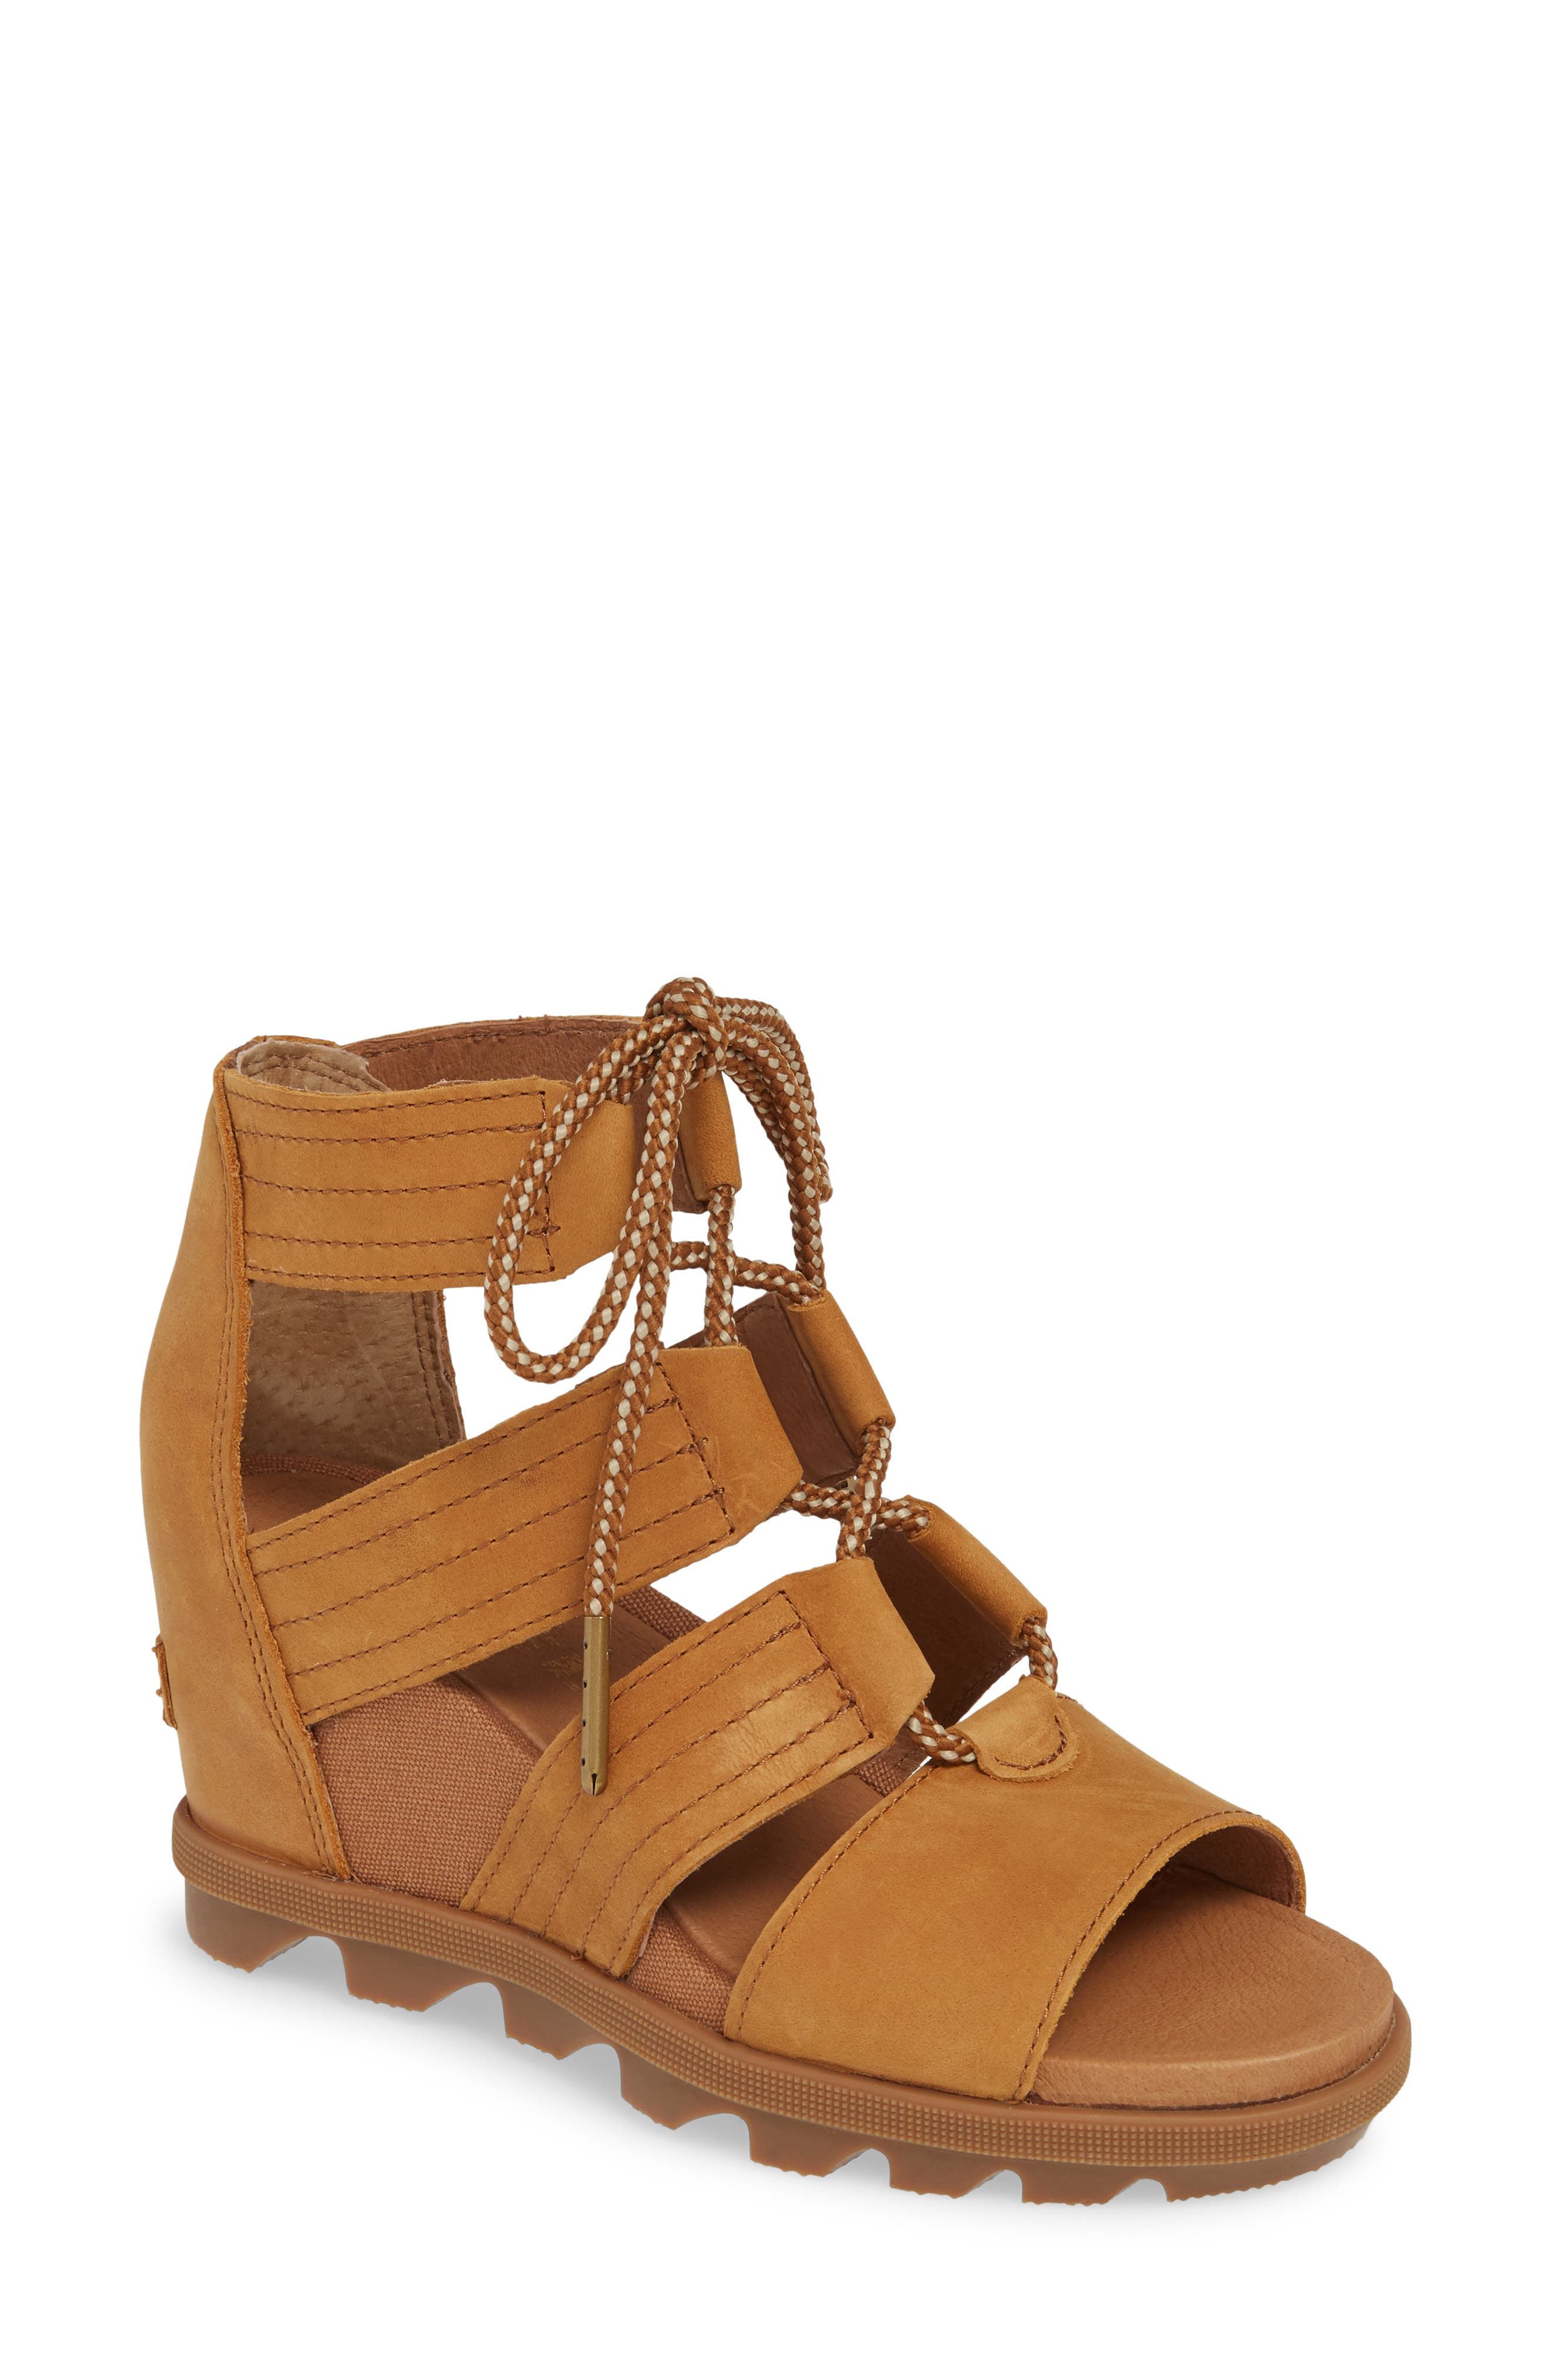 Sorel Joanie Ii Cage Sandal- Brown